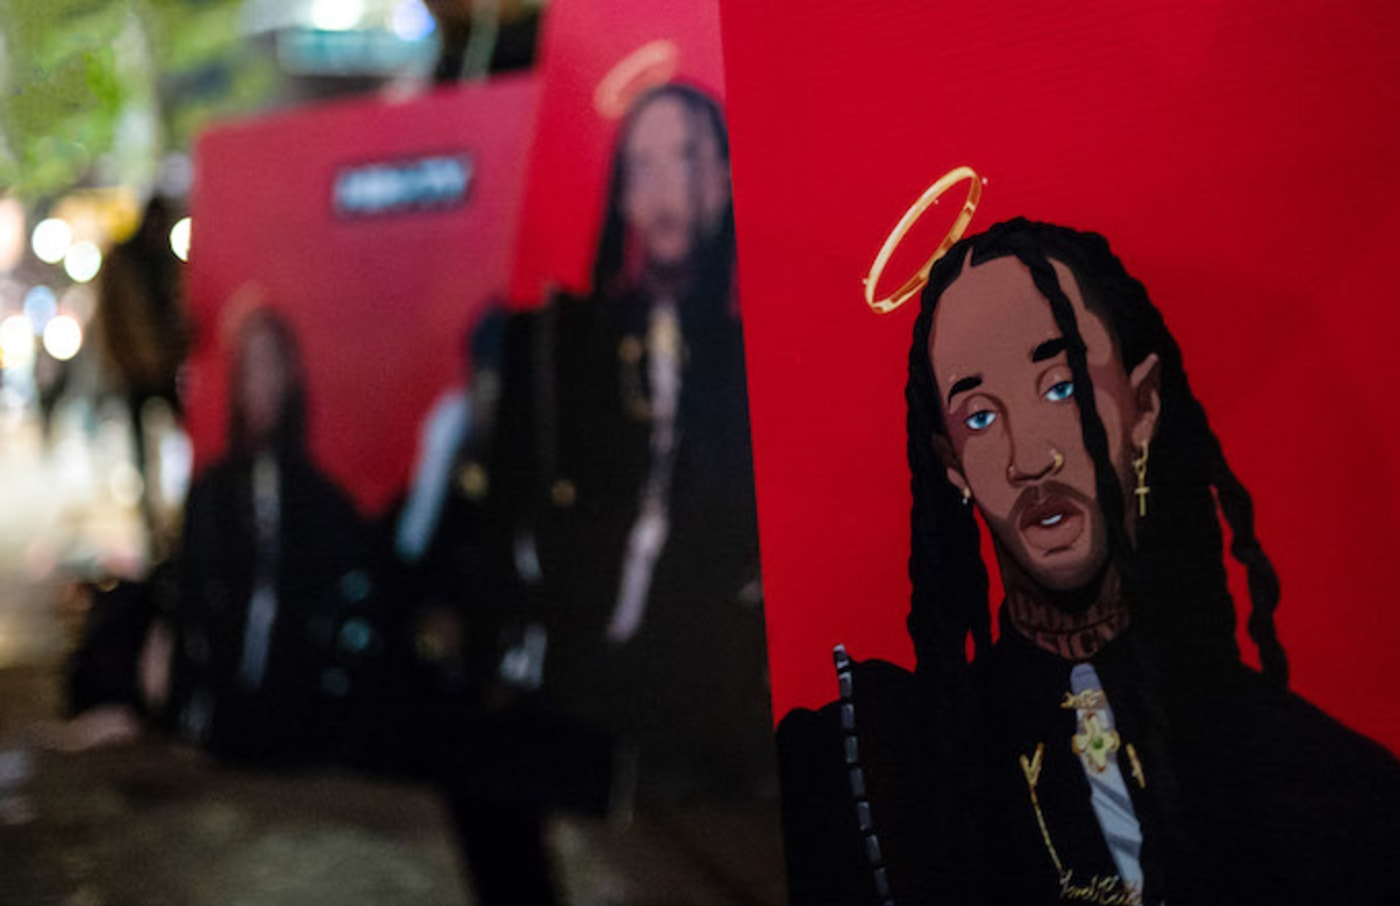 Atmosphere at Ty Dolla Sign and Jeremih's 'Mih Ty' Album Listening Party.